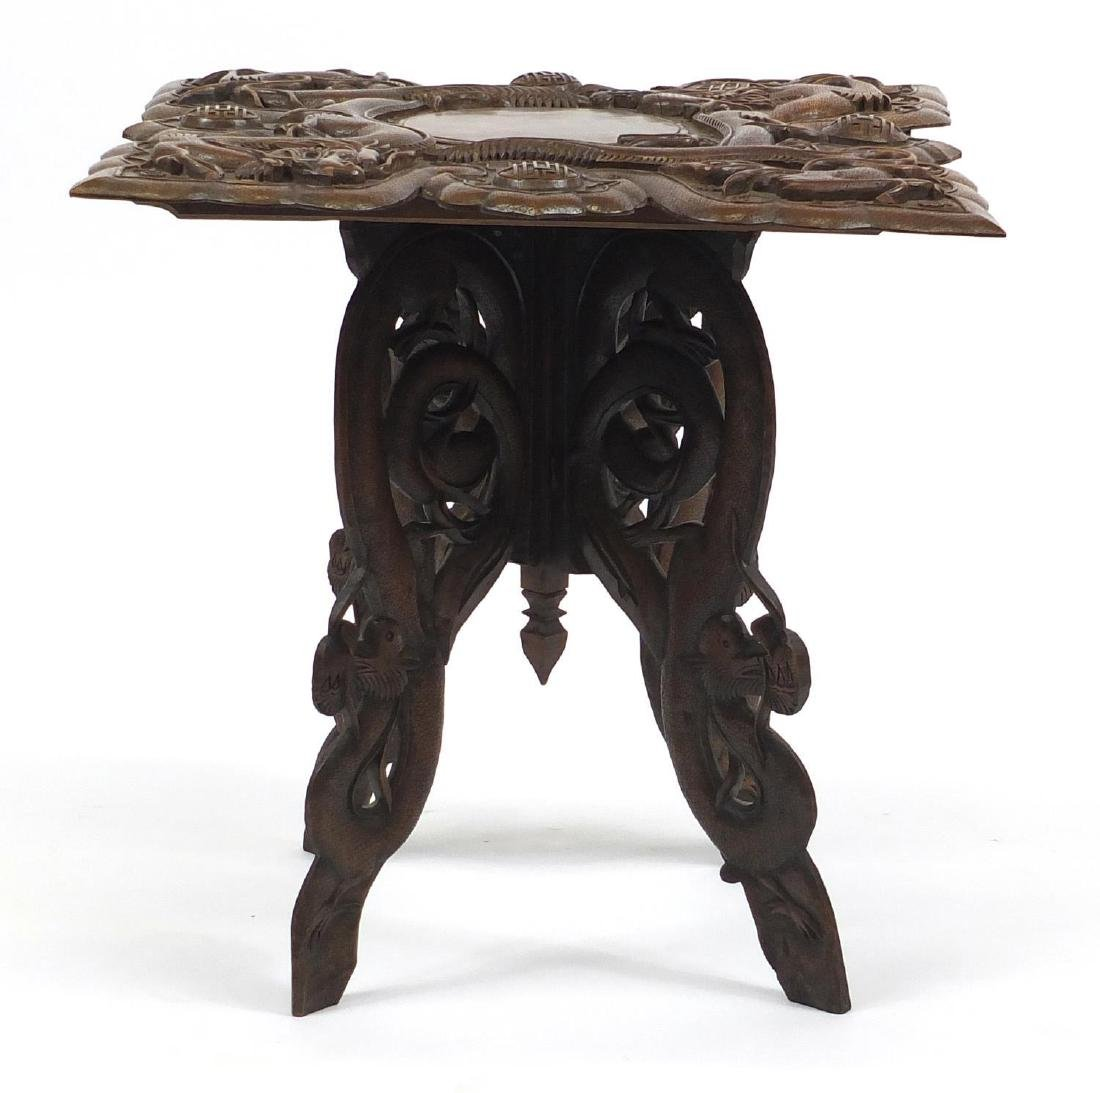 Chinese hardwood table, the square top deeply carved with two dragons, bats and symbols, 59cm H x